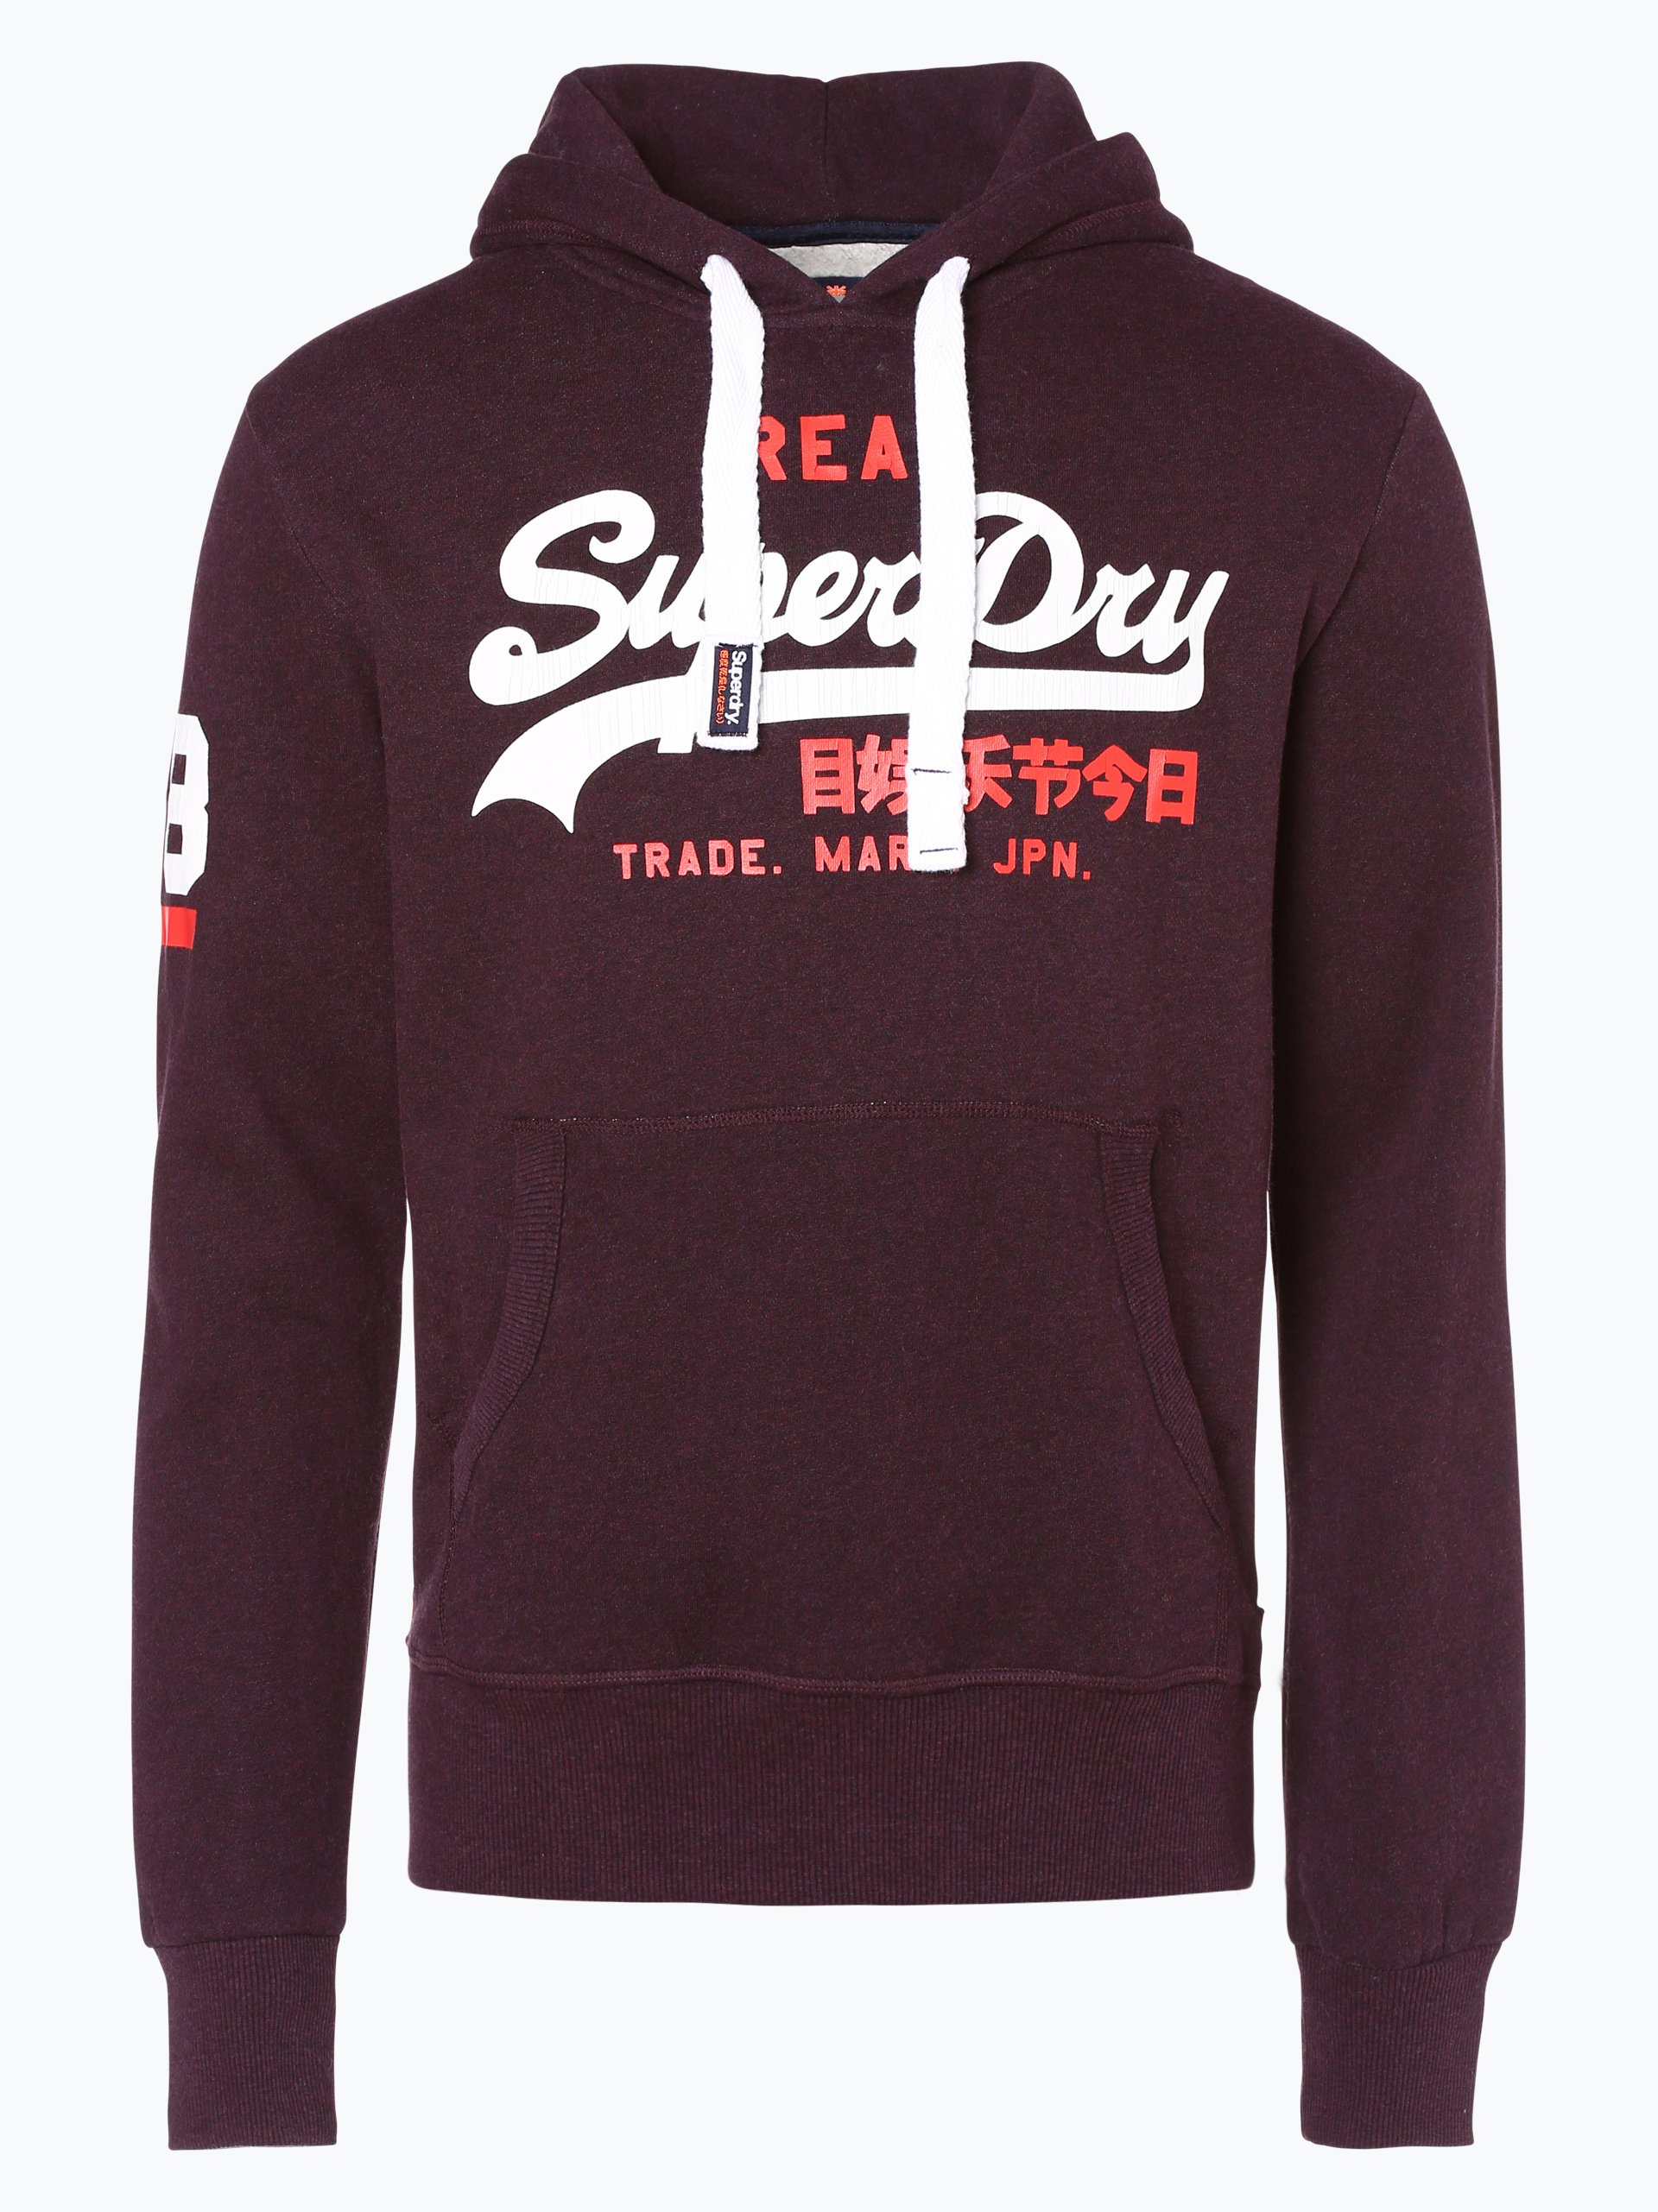 superdry herren sweatshirt schwarz aubergine gemustert. Black Bedroom Furniture Sets. Home Design Ideas